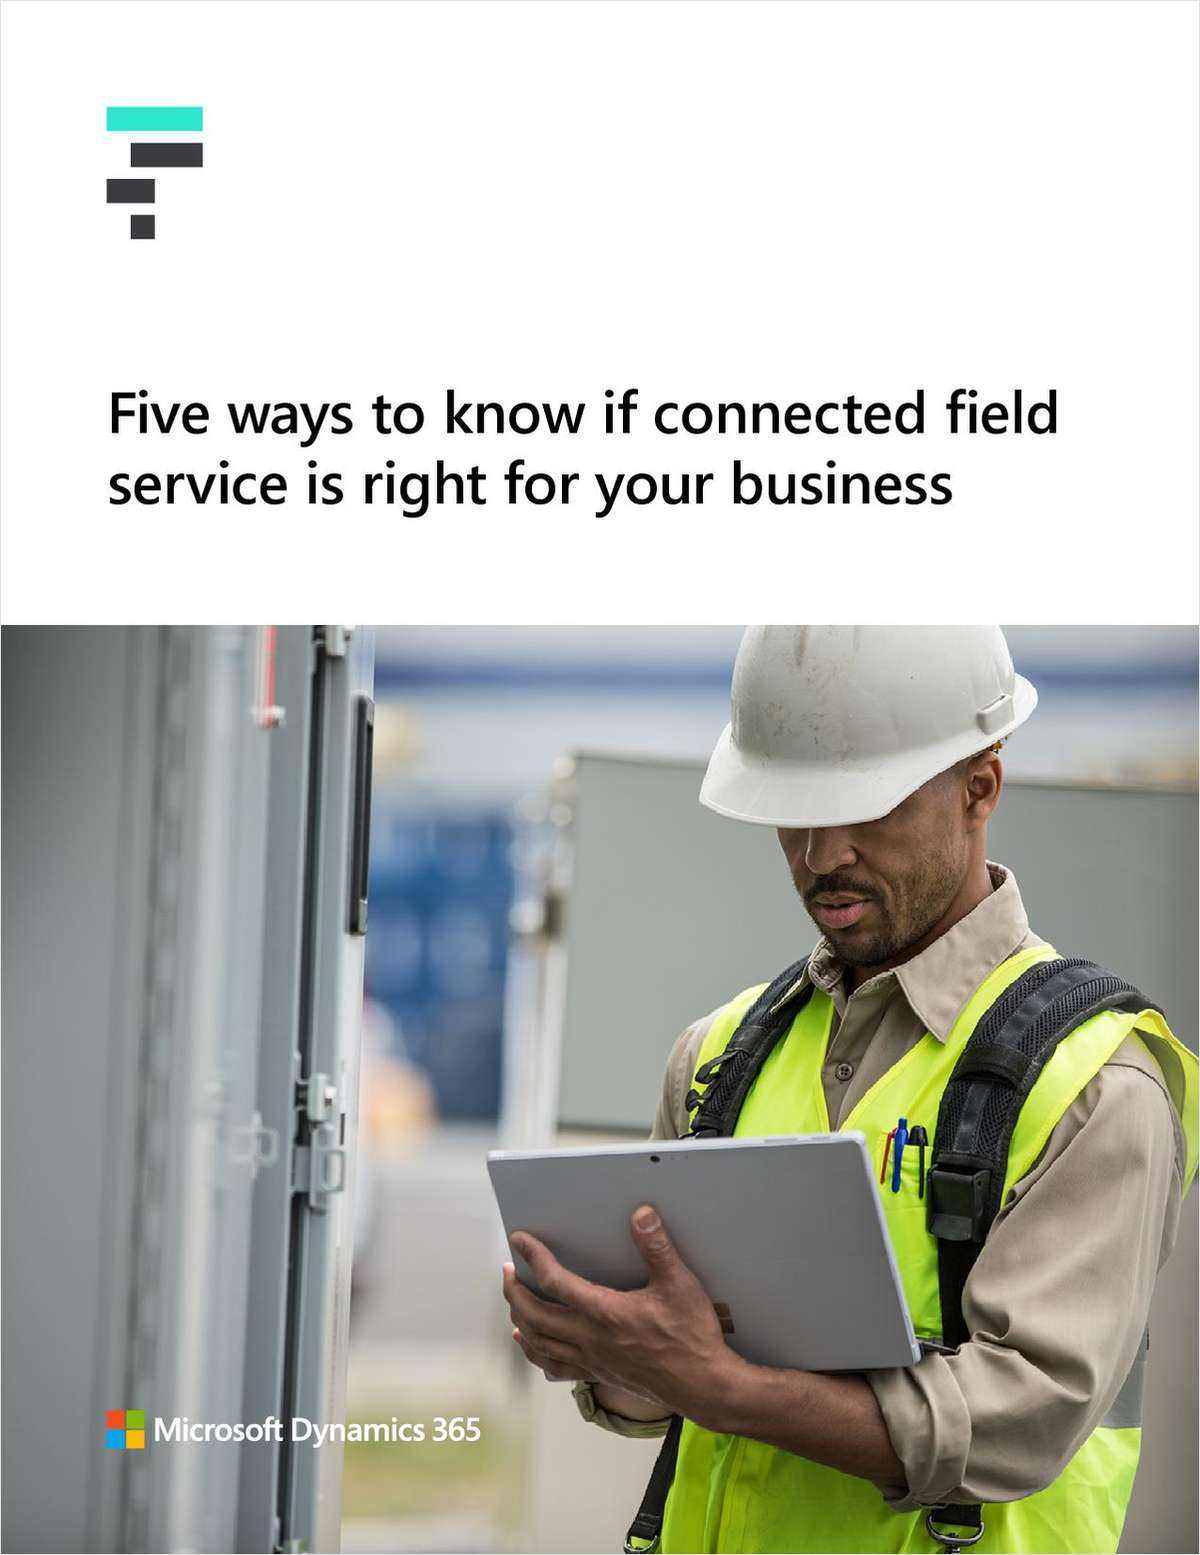 5 Ways to Know if Connected Field Service is Right for Your Business